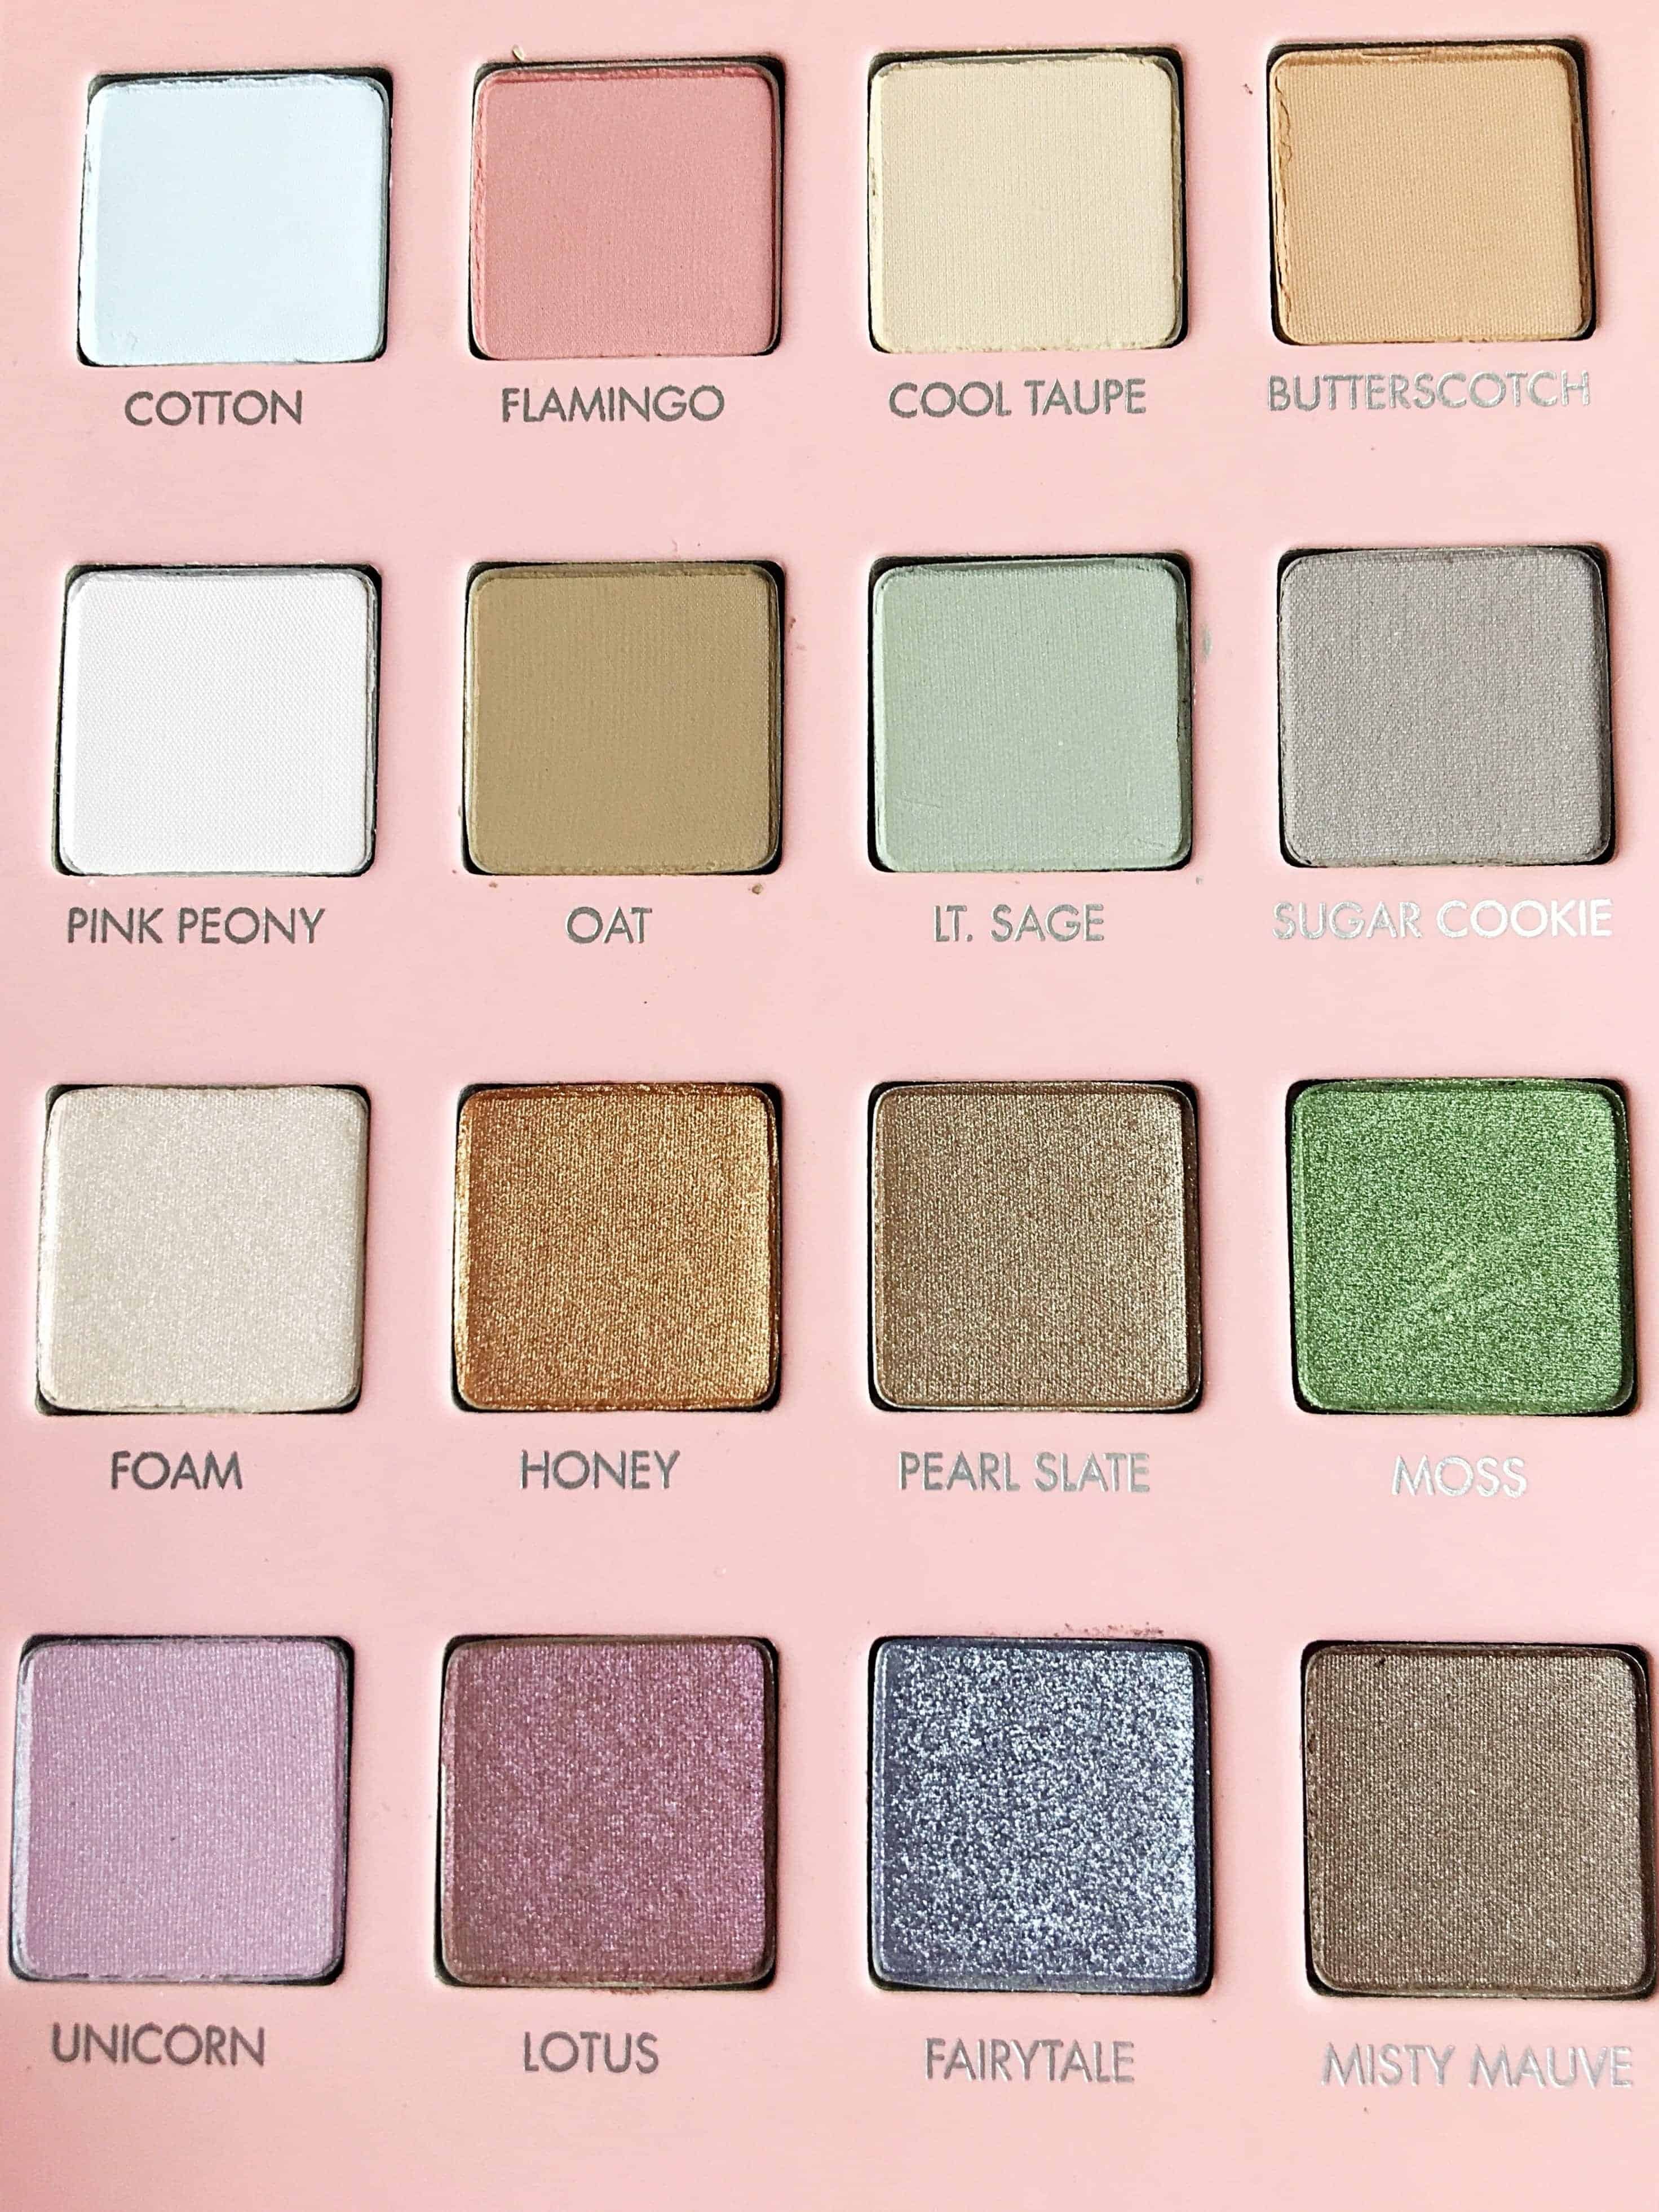 Lorac Mega Pro 4 Palette - Review + Swatches